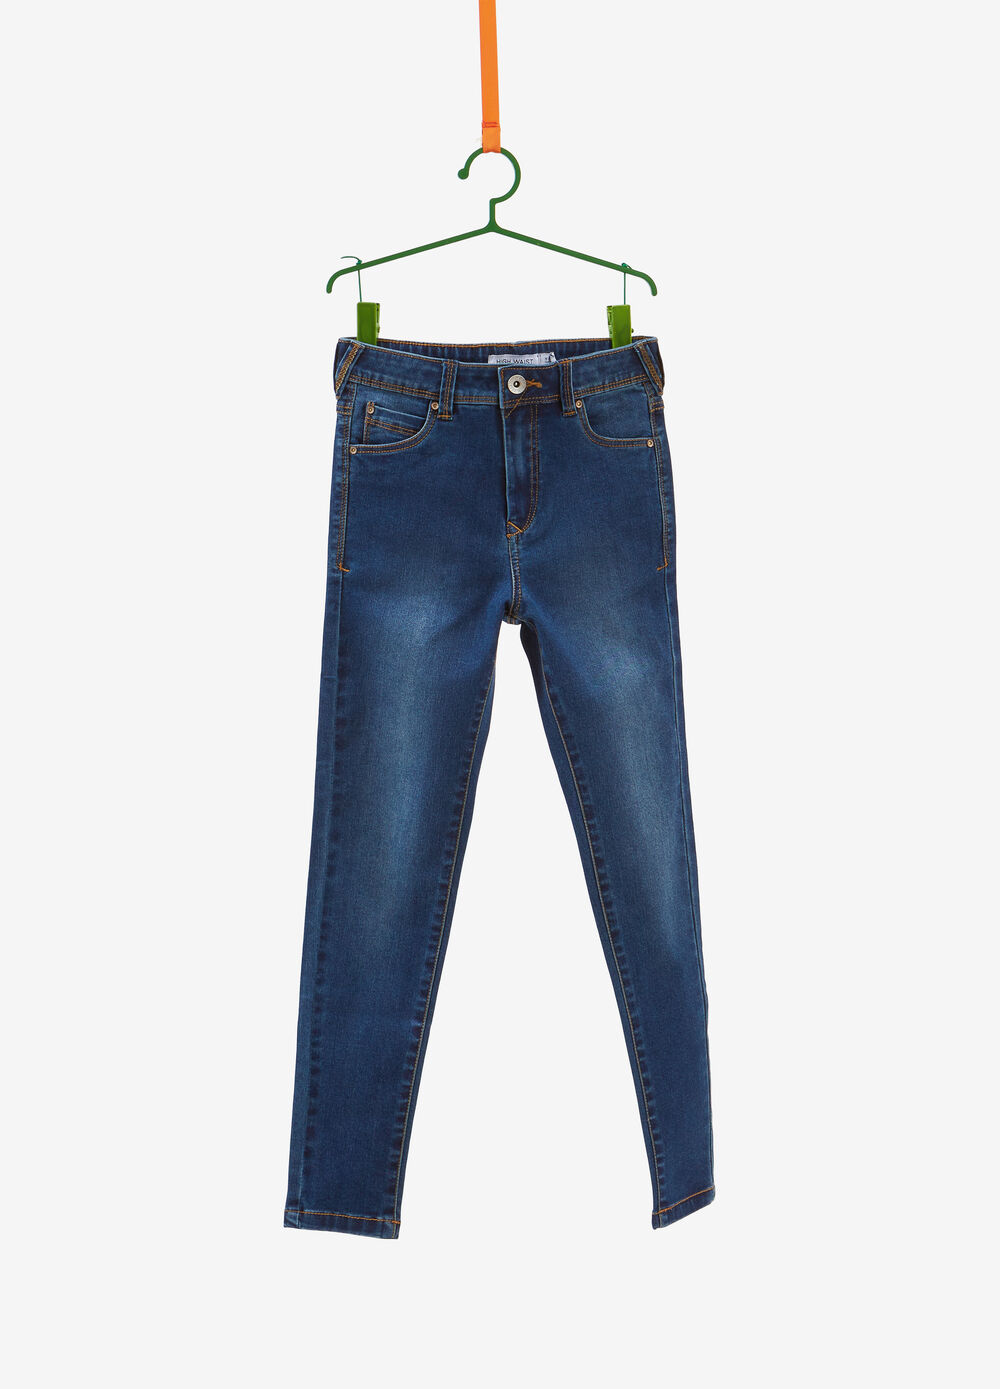 High-waisted washed-effect stretch jeans